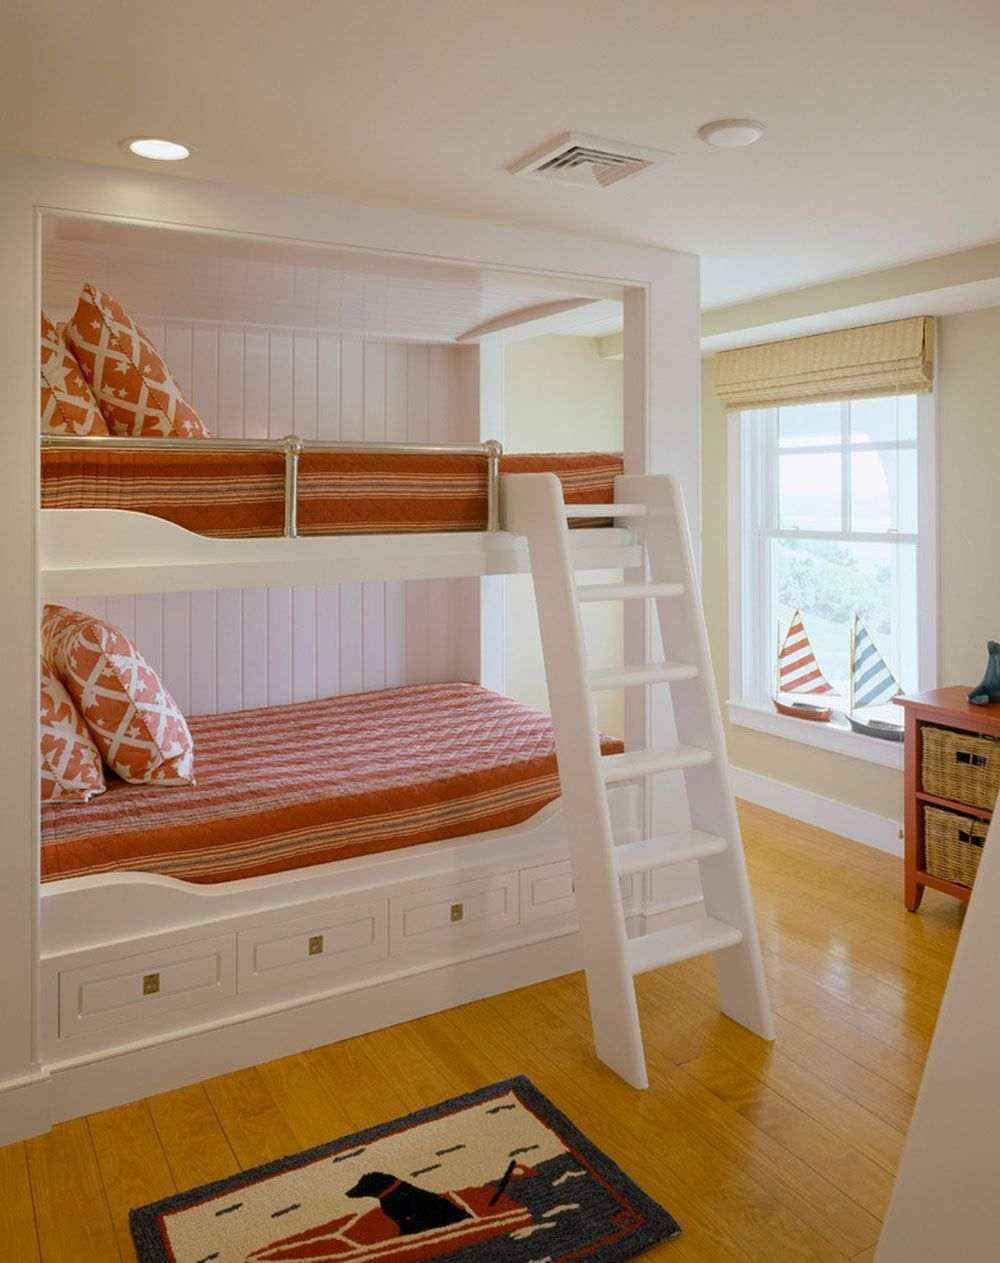 Built in loft bed ideas  YourChildWillLoveTheseBunkBedsWithStairs Bunk Bed Ideas For